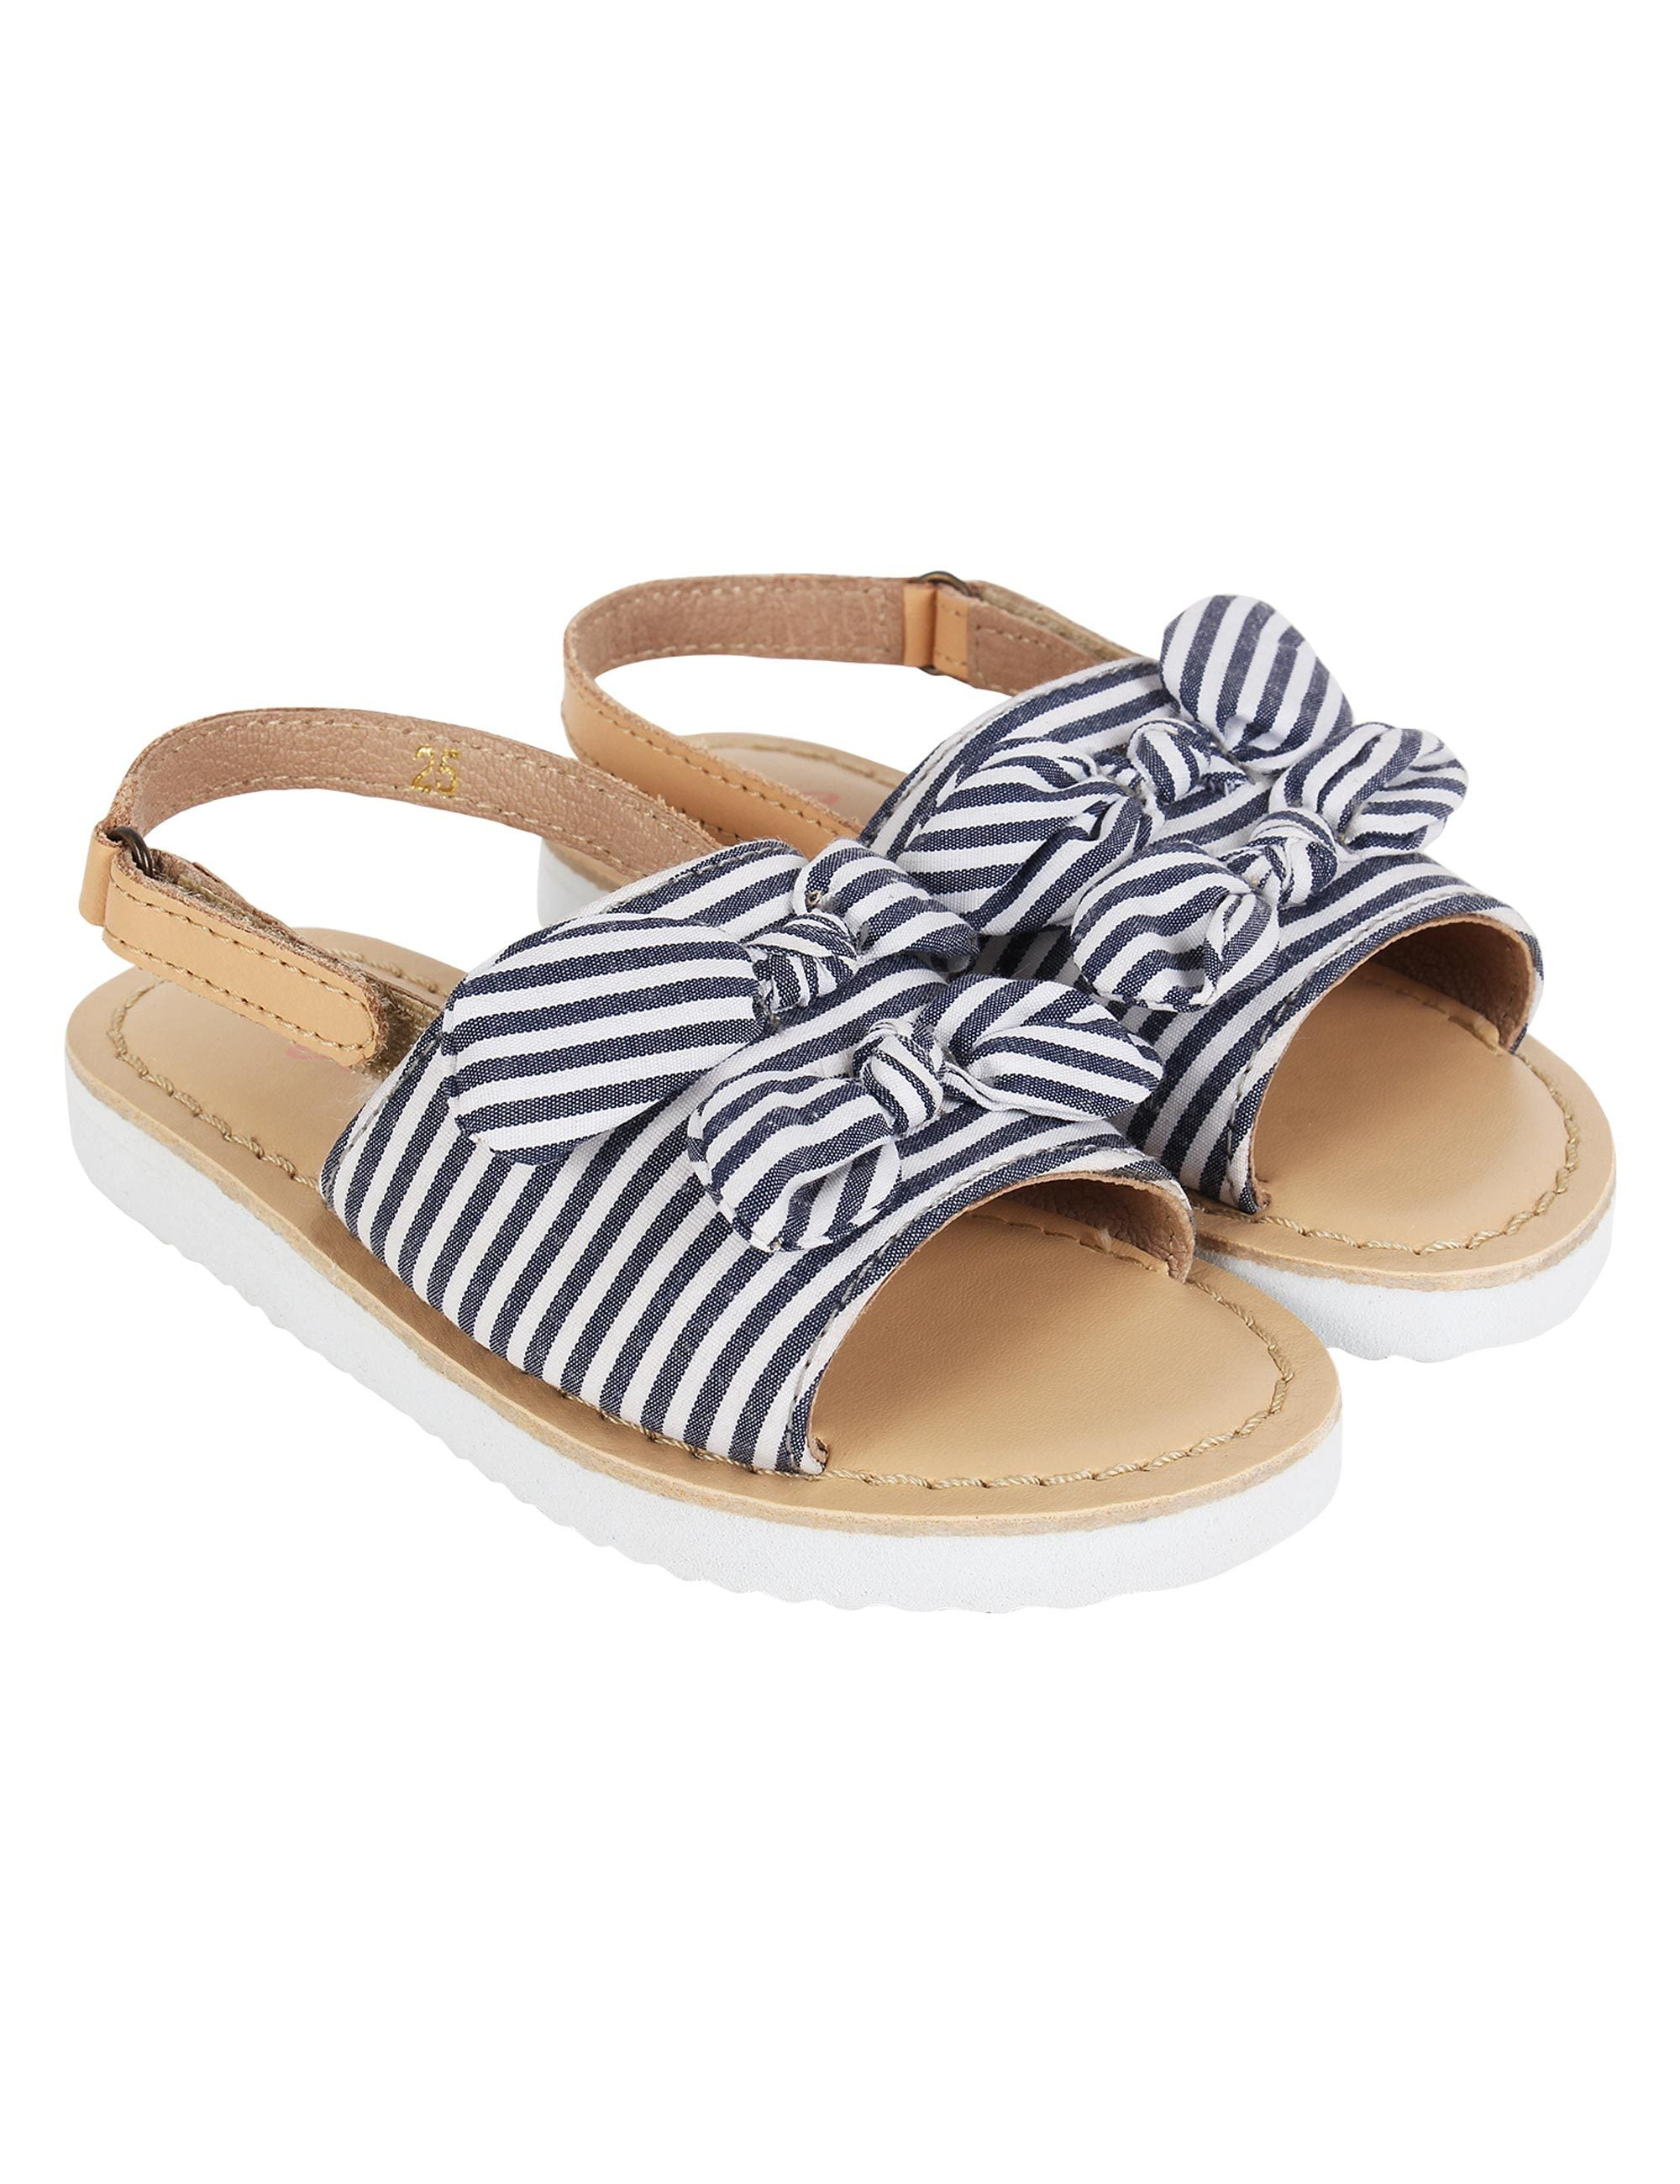 Blue Stripes Flats for Girls